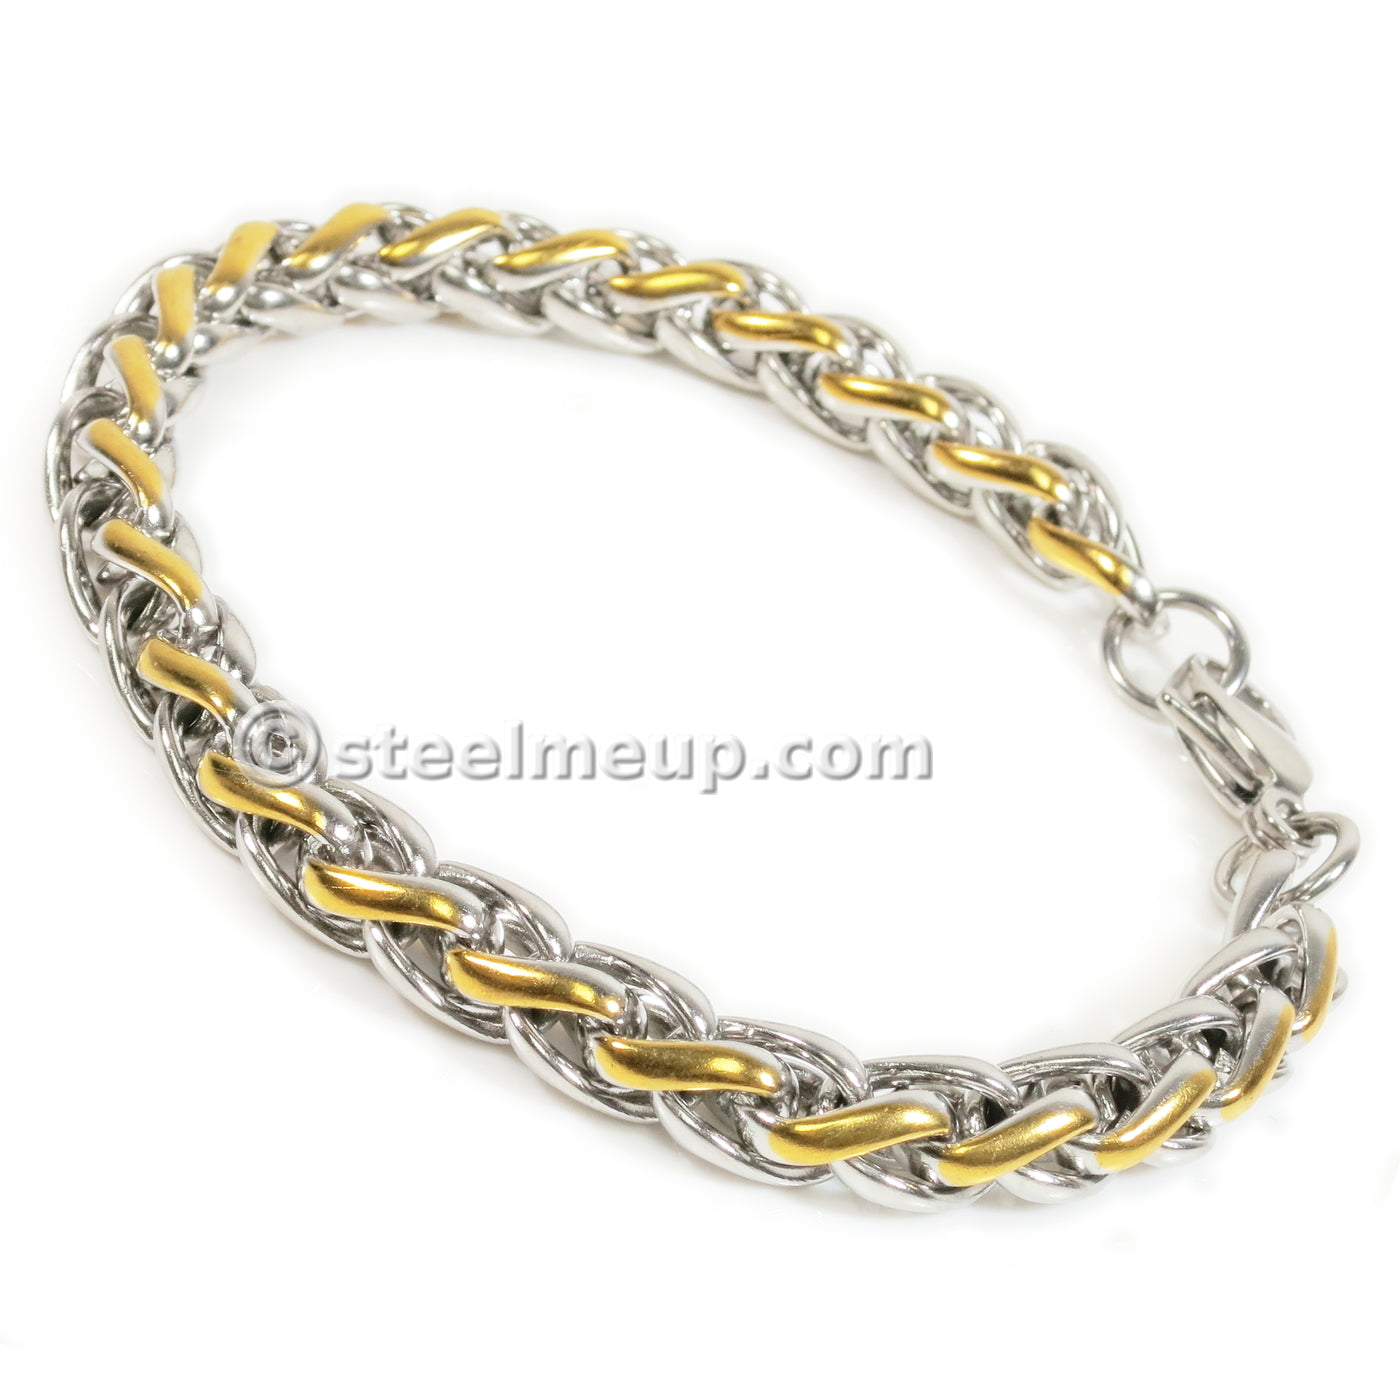 Stainless Steel 2 Tone Silver Gold Wheat Chain Men Bracelet 7mm